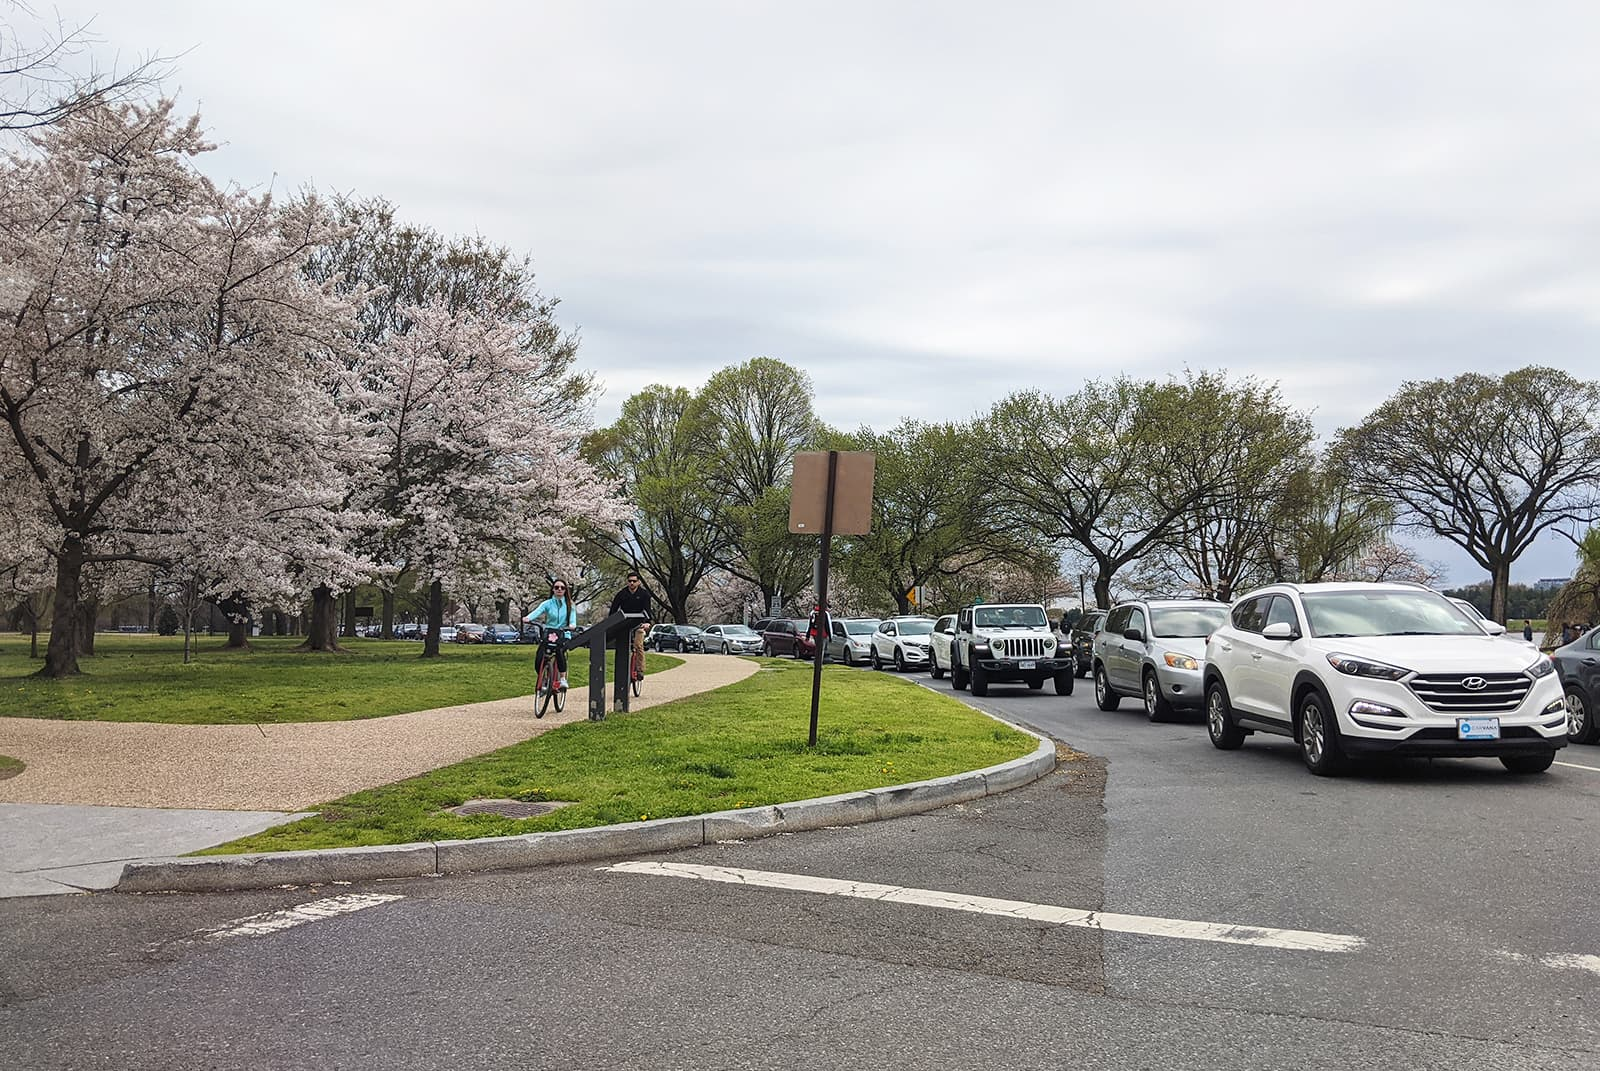 Tidal Basin, Washington, DC: Most people refuse to leave their cars to experience the cherry blossoms in bloom. - Picture by Author